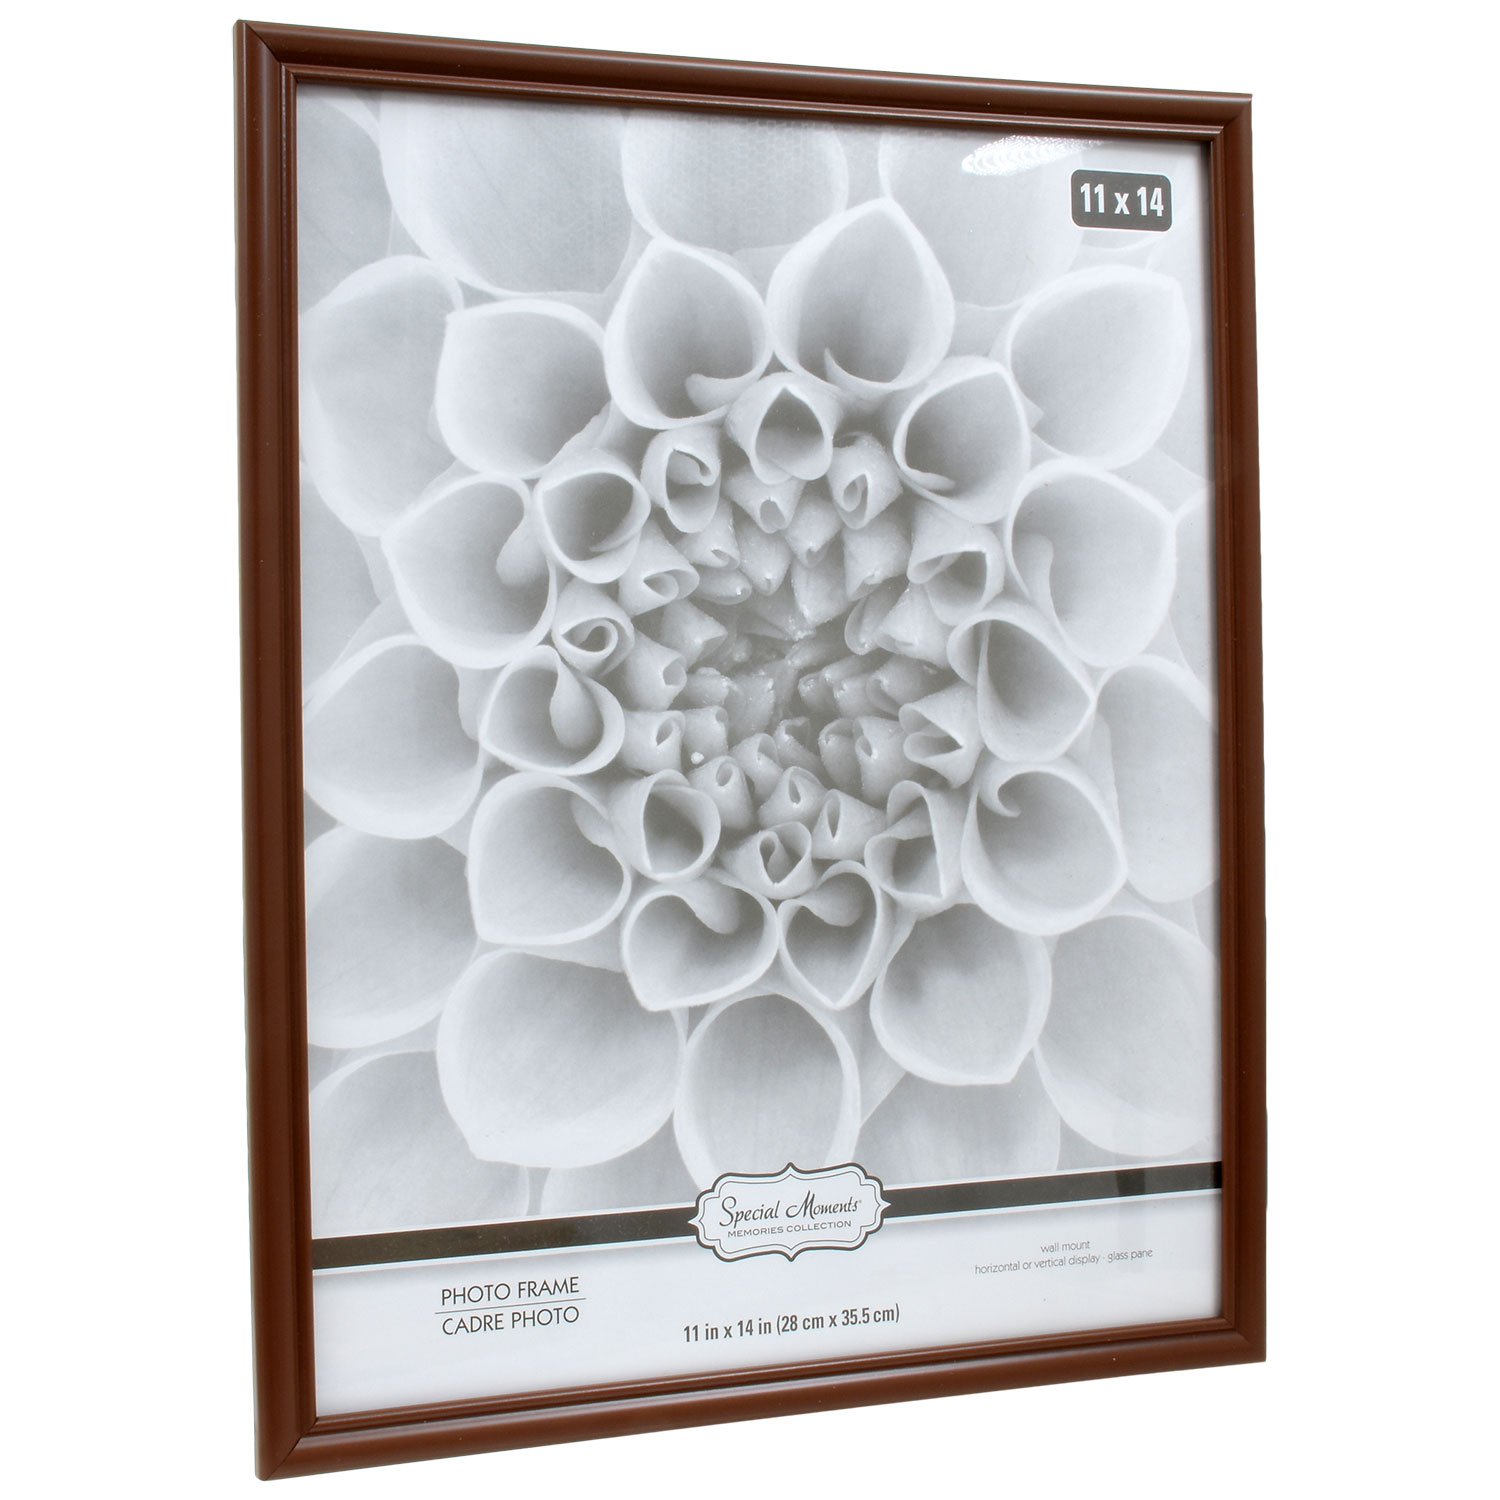 Special Moments Picture Frames Dollar Tree Inc